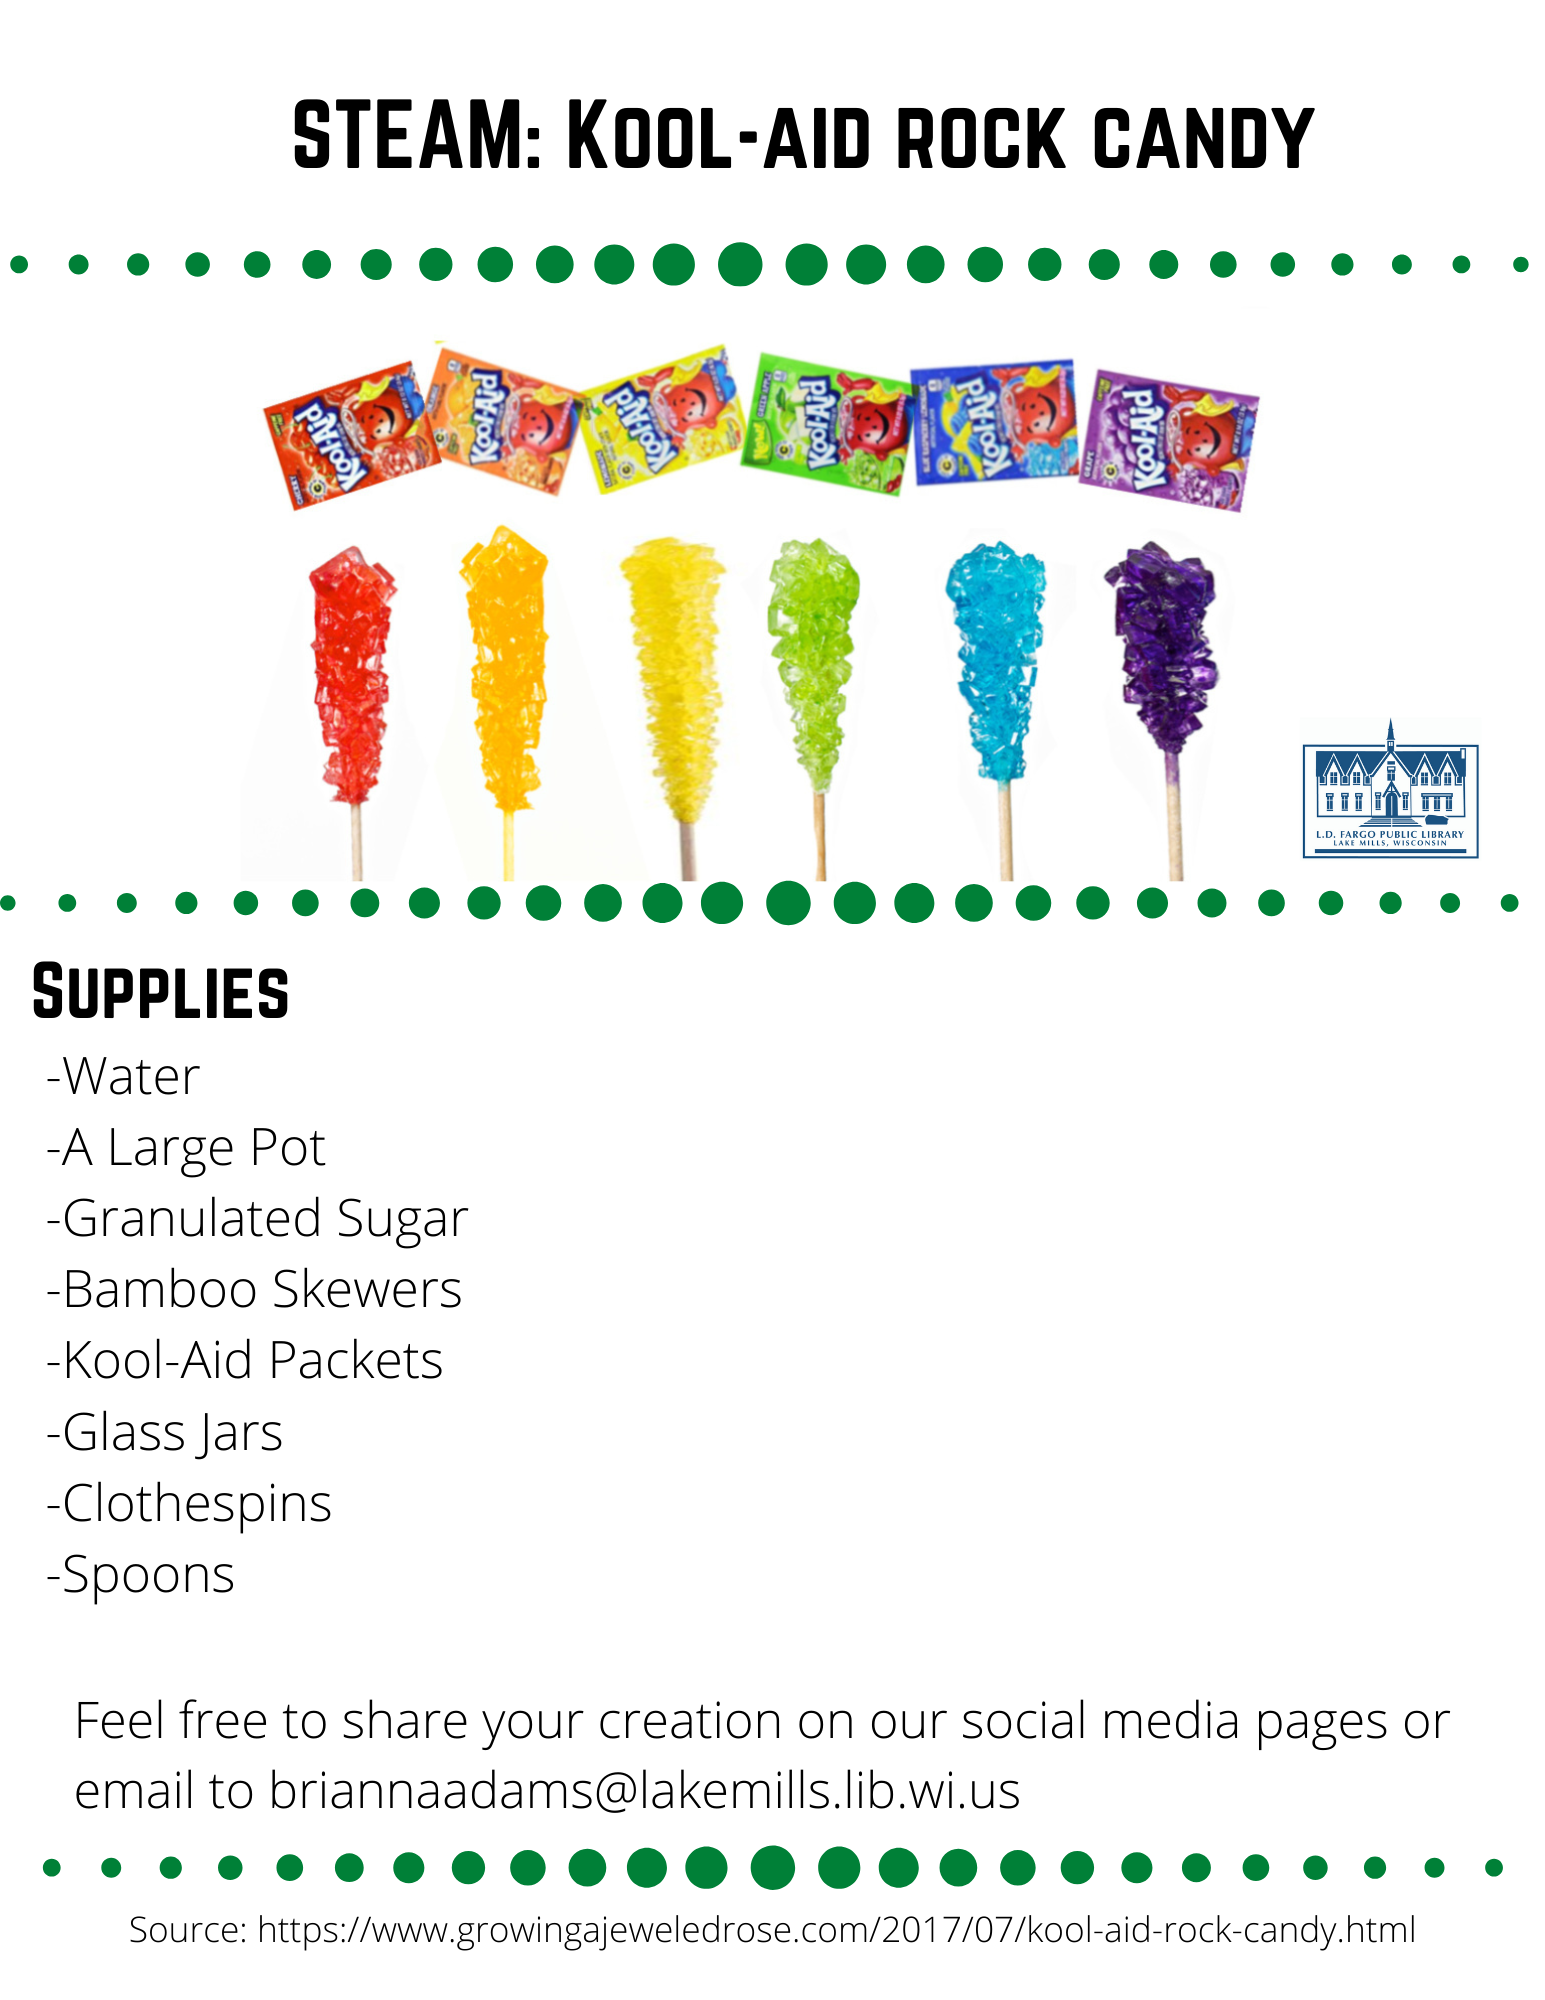 STEAM: Kool-aid rock candy  Supplies  -Water -A Large Pot -Granulated Sugar -Bamboo Skewers -Kool-Aid Packets -Glass Jars -Clothespins -Spoons  Feel free to share your creation on our social media pages or  email to briannaadams@lakemills.lib.wi.us   Source: https://www.growingajeweledrose.com/2017/07/kool-aid-rock-candy.html  Step 1: Preparing the skewers  Begin by soaking bamboo skewers in a container of water.  Leave them to soak for at least 1 hour.  Remove the skewers from the water, and then coat the bottom half in sugar.  Set the skewers aside and allow them to fully dry.  Step 2: Preparing the Sugar Solution  Begin by pouring 4 cups of water into a large pot. Then, place it over medium heat. As the water heats, slowly add white sugar 1 cup at a time and stir until dissolved. Continue to add more sugar and stir until you can not get any more sugar to dissolve in the water. (just to give you an idea I used almost 10 cups) Once this occurs bring the mixture to a boil and then allow it to boil slowly for 10 minutes. Remove the pot from heat and allow the sugar mixture to cool for 10-15 minutes.  Step 3 Preparing the Jars  While the water is cooling you can prepare your glass jars. Pour one packet of Kool-Aid into each jar, using one jar for each color/flavor of rock candy that you wish to make. Then, pour the sugar-water into the jars and stir each one until the Kool-Aid is fully dissolved. If you are using jars with lids you can place the lids on the jars and shake them to help get everything mixed. Now, take a break, and wait for the glasses of sugar-water to cool to room temperature. This part is very important!! Use clothespin to hold the skewer in place in the jar.  Clip the side of the top half of the skewer and then the clothespin should lay across the top of the jar opening.   Note:  If you place the skewers into the jars too soon, the heat from the water will dissolve the sugar on the stick, and the experiment will not work. Also be sure that the sticks